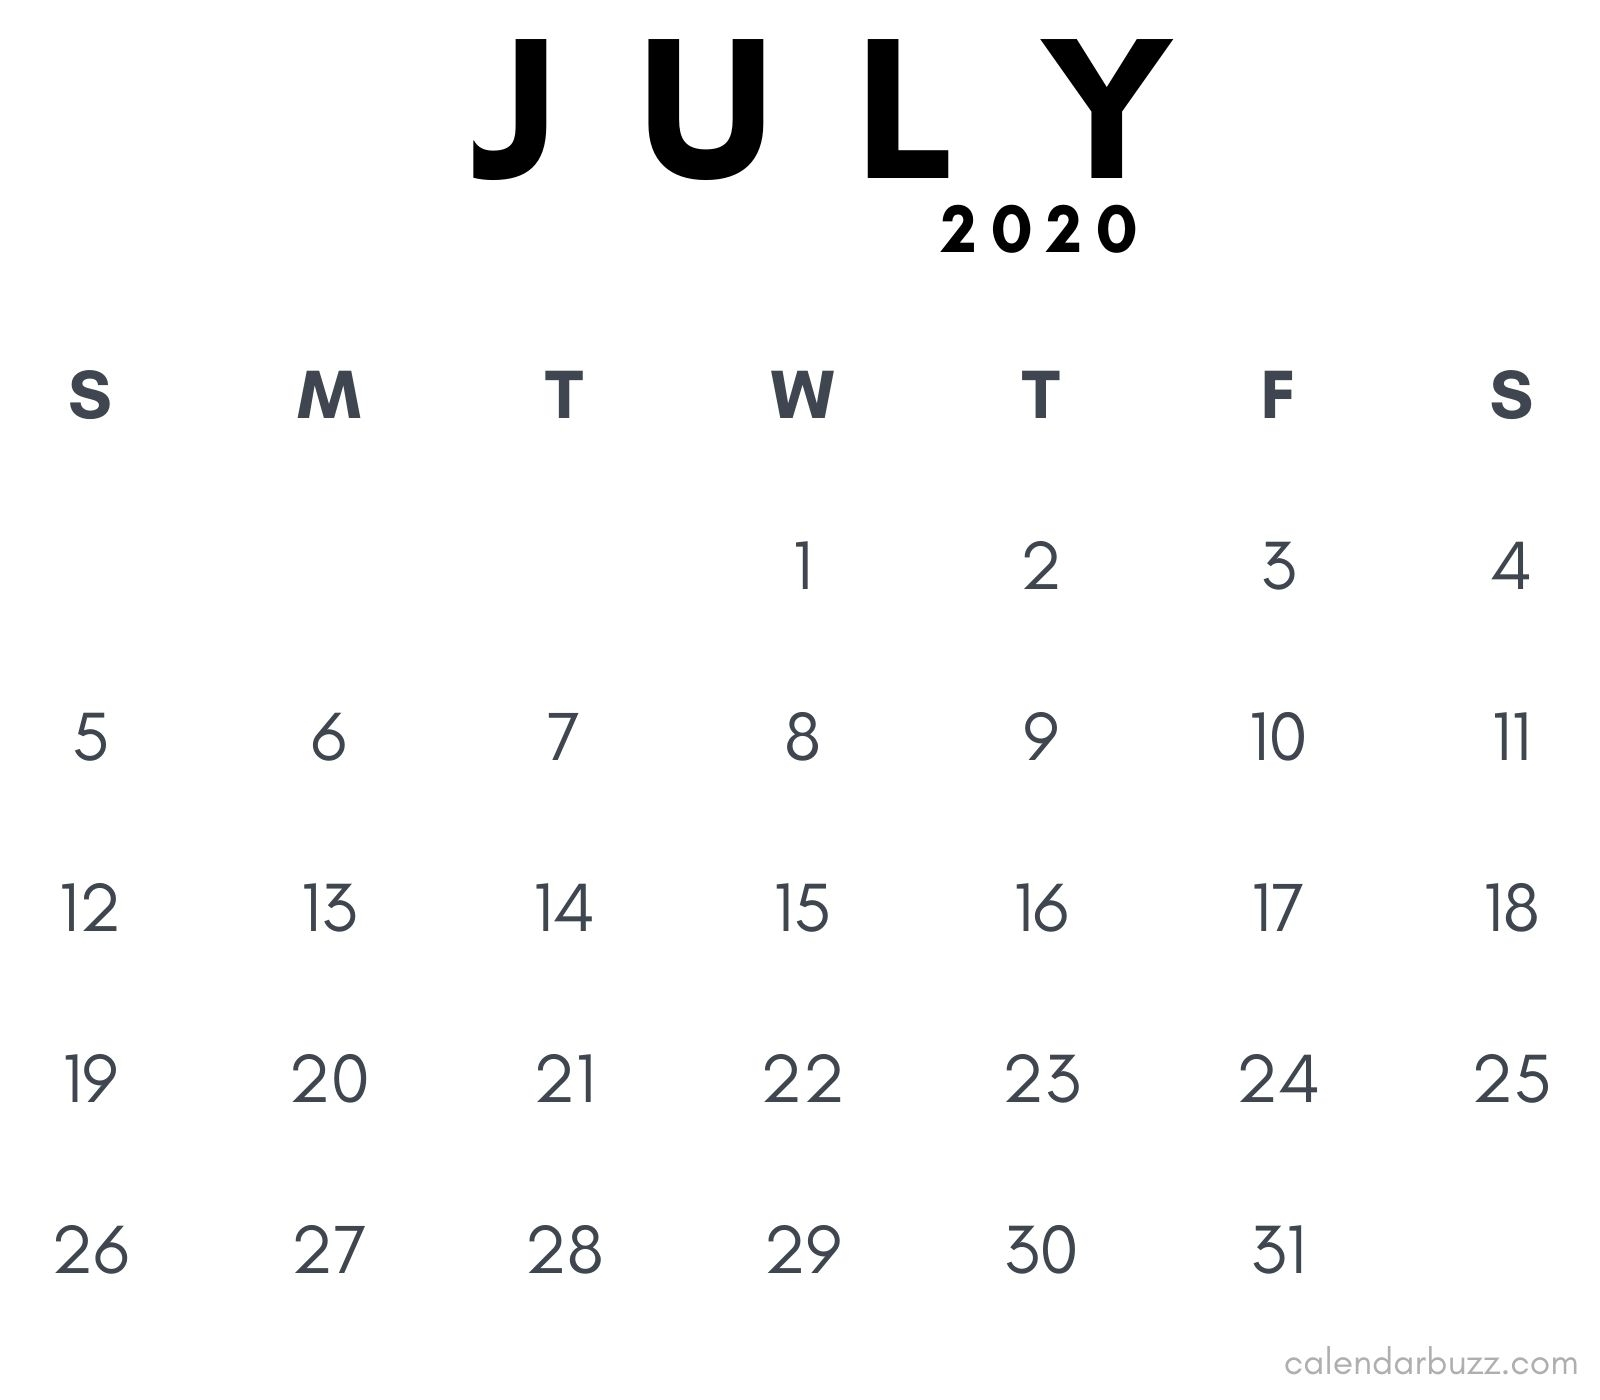 July 2020 Pdf Calendar Printable | Calendarbuzz with regard to Free Printable Calendar 2020 Waterproof